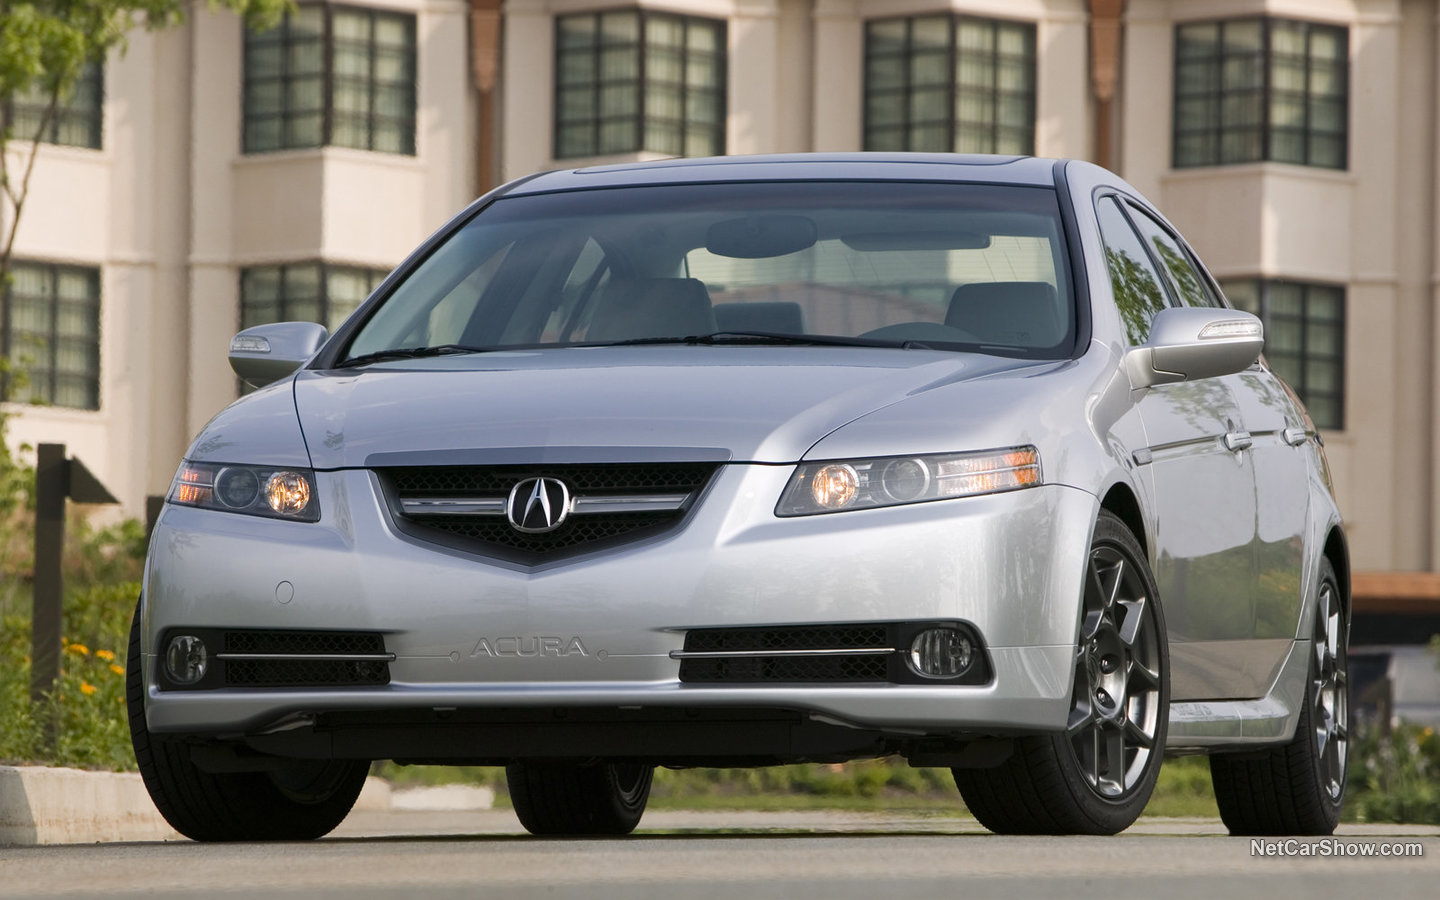 Acura TL Type-S 2007 a893a011